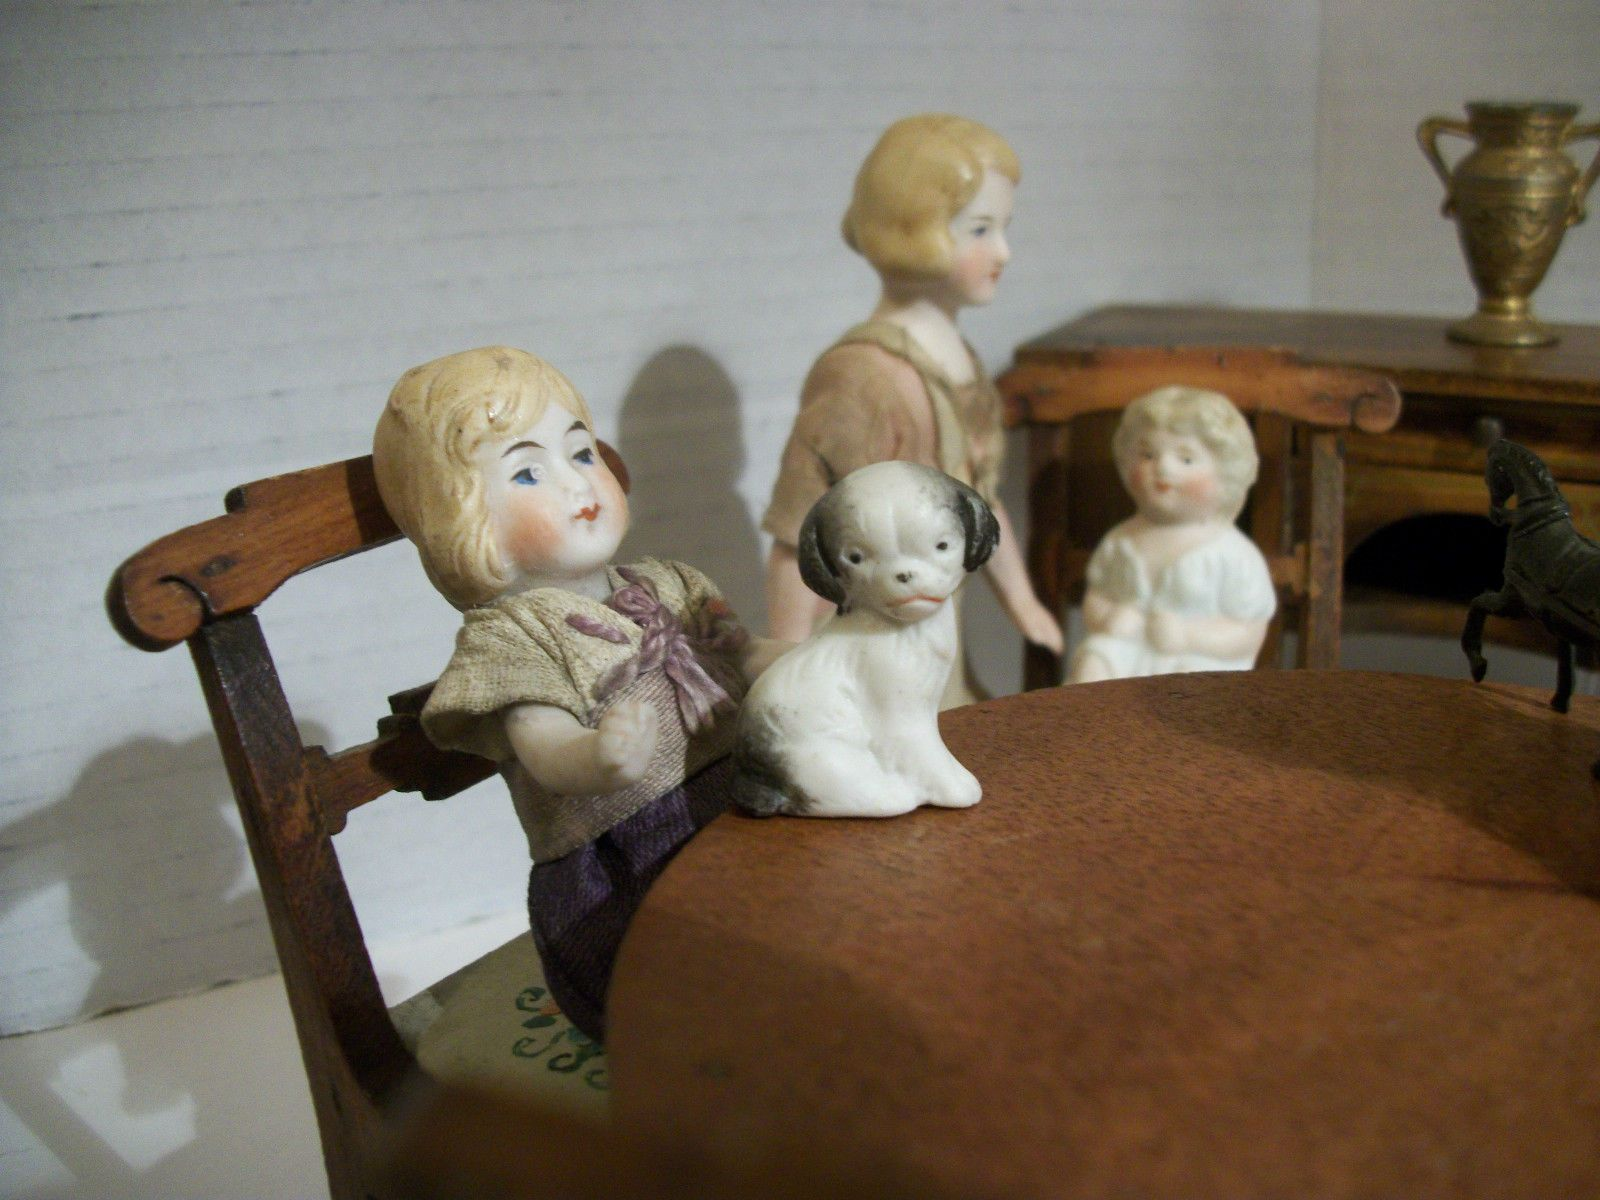 Antique Tynietoy Dining Parlor W/ Antique German Bisque Dollhouse Doll  Family!!! |